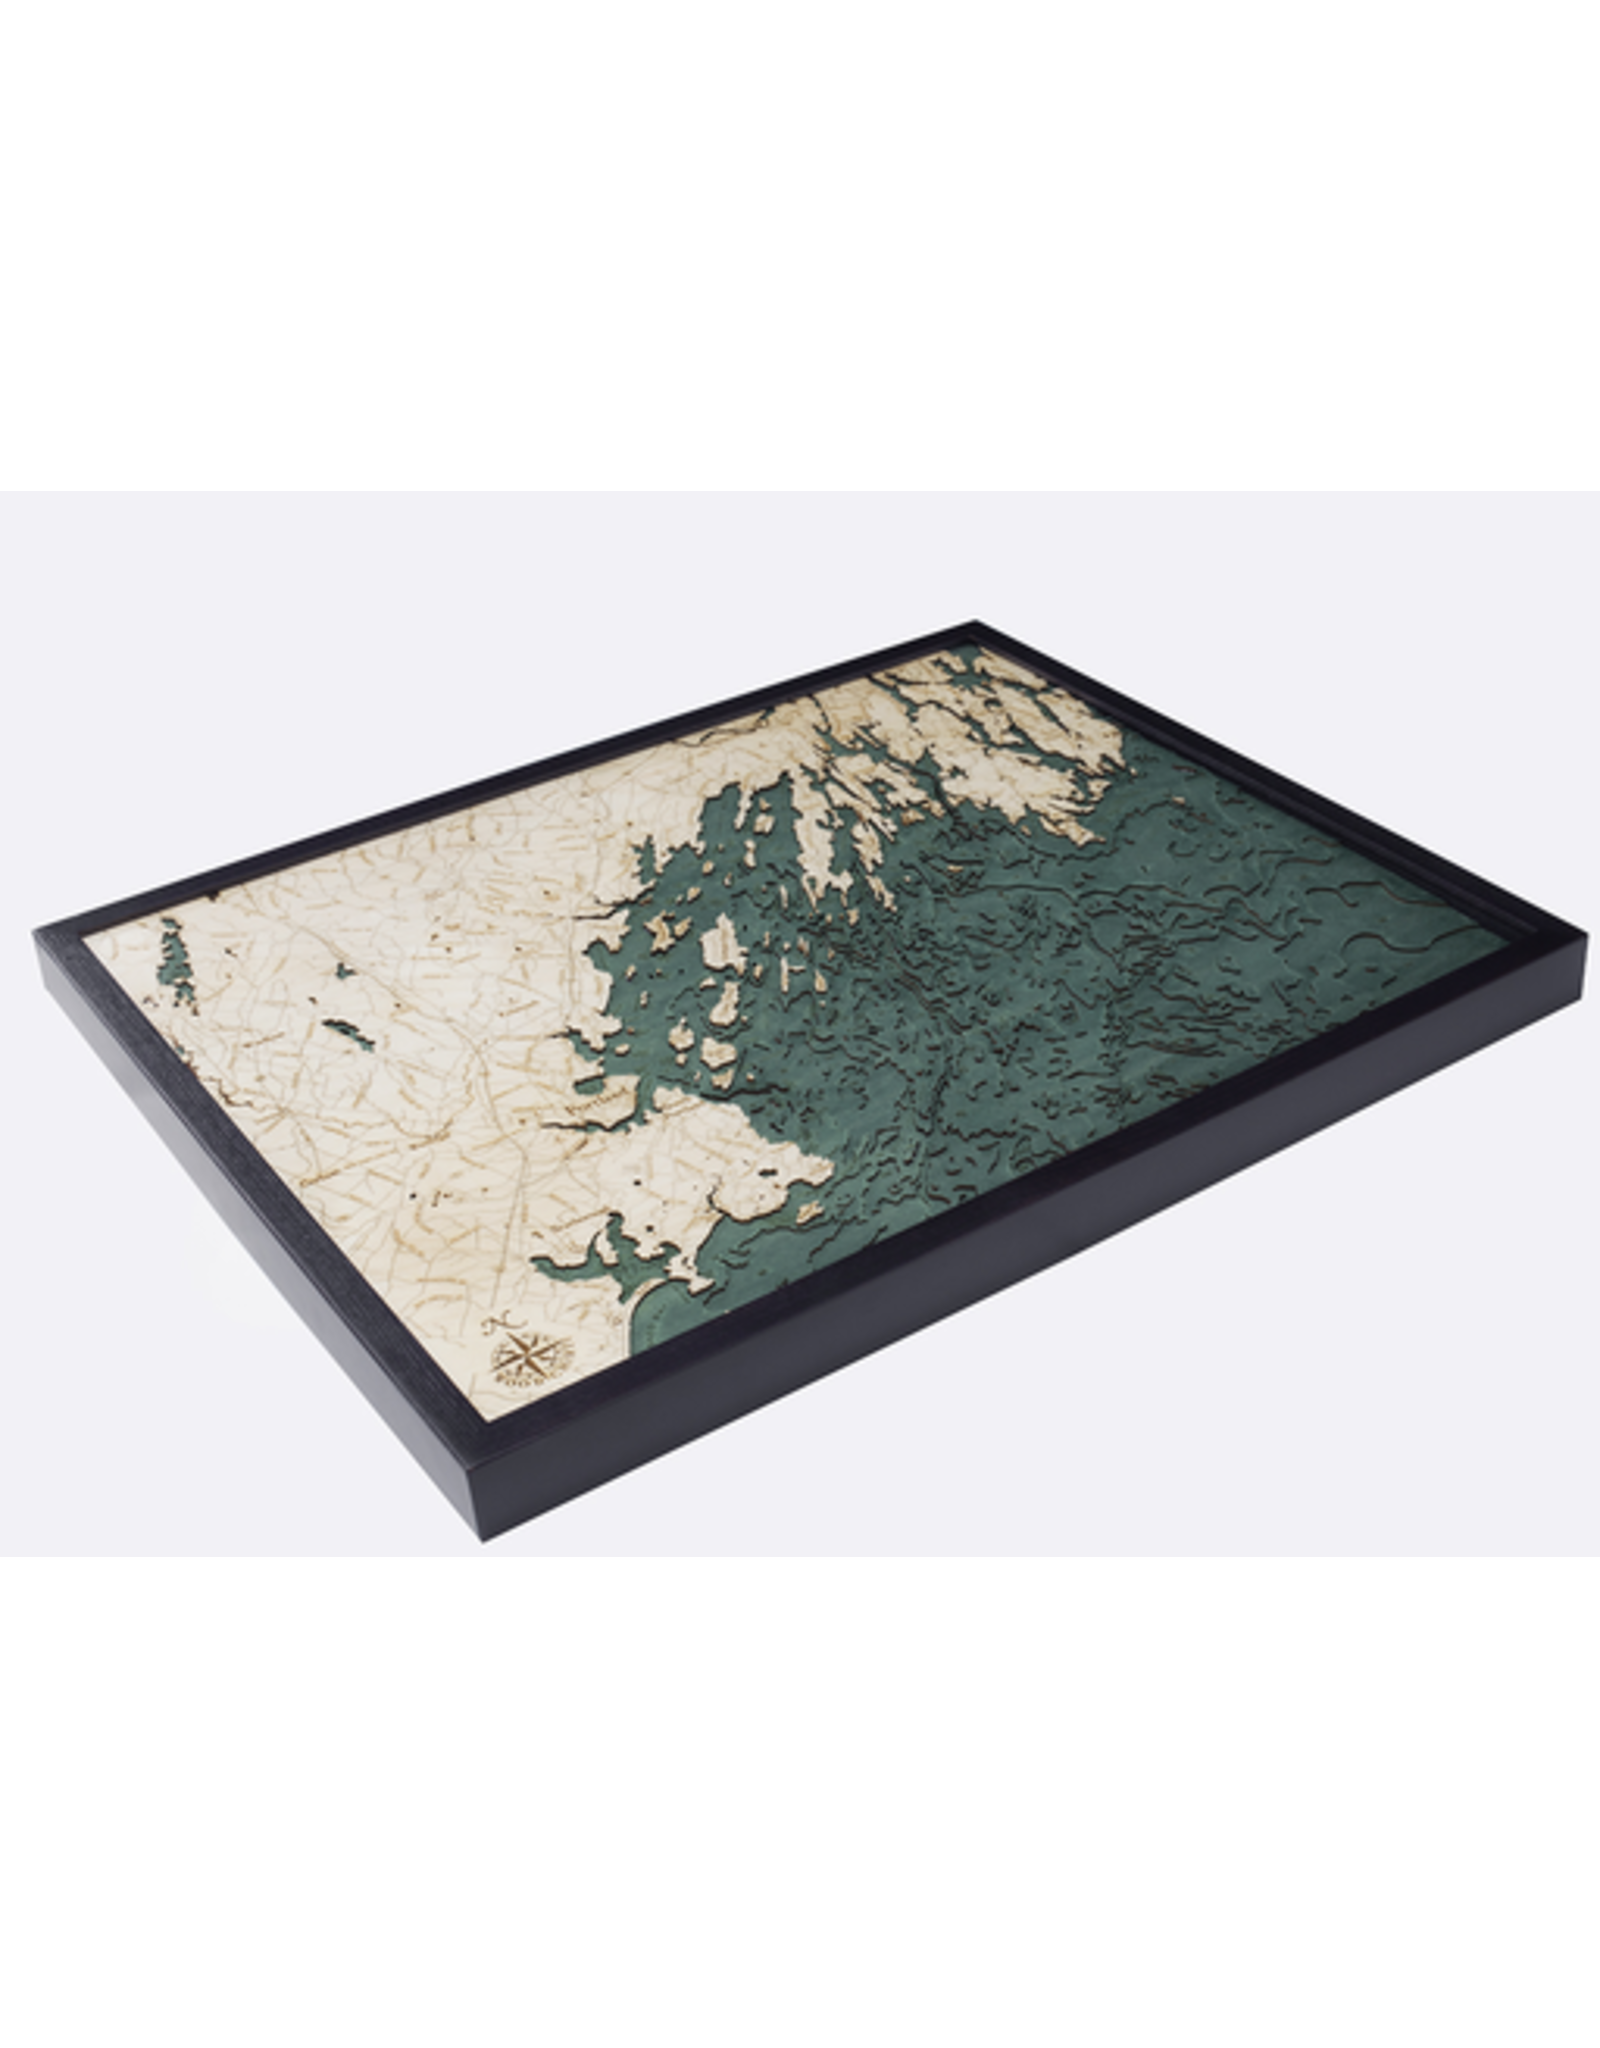 WoodCharts Portland, ME (Bathymetric 3-D Wood Carved Nautical Chart)